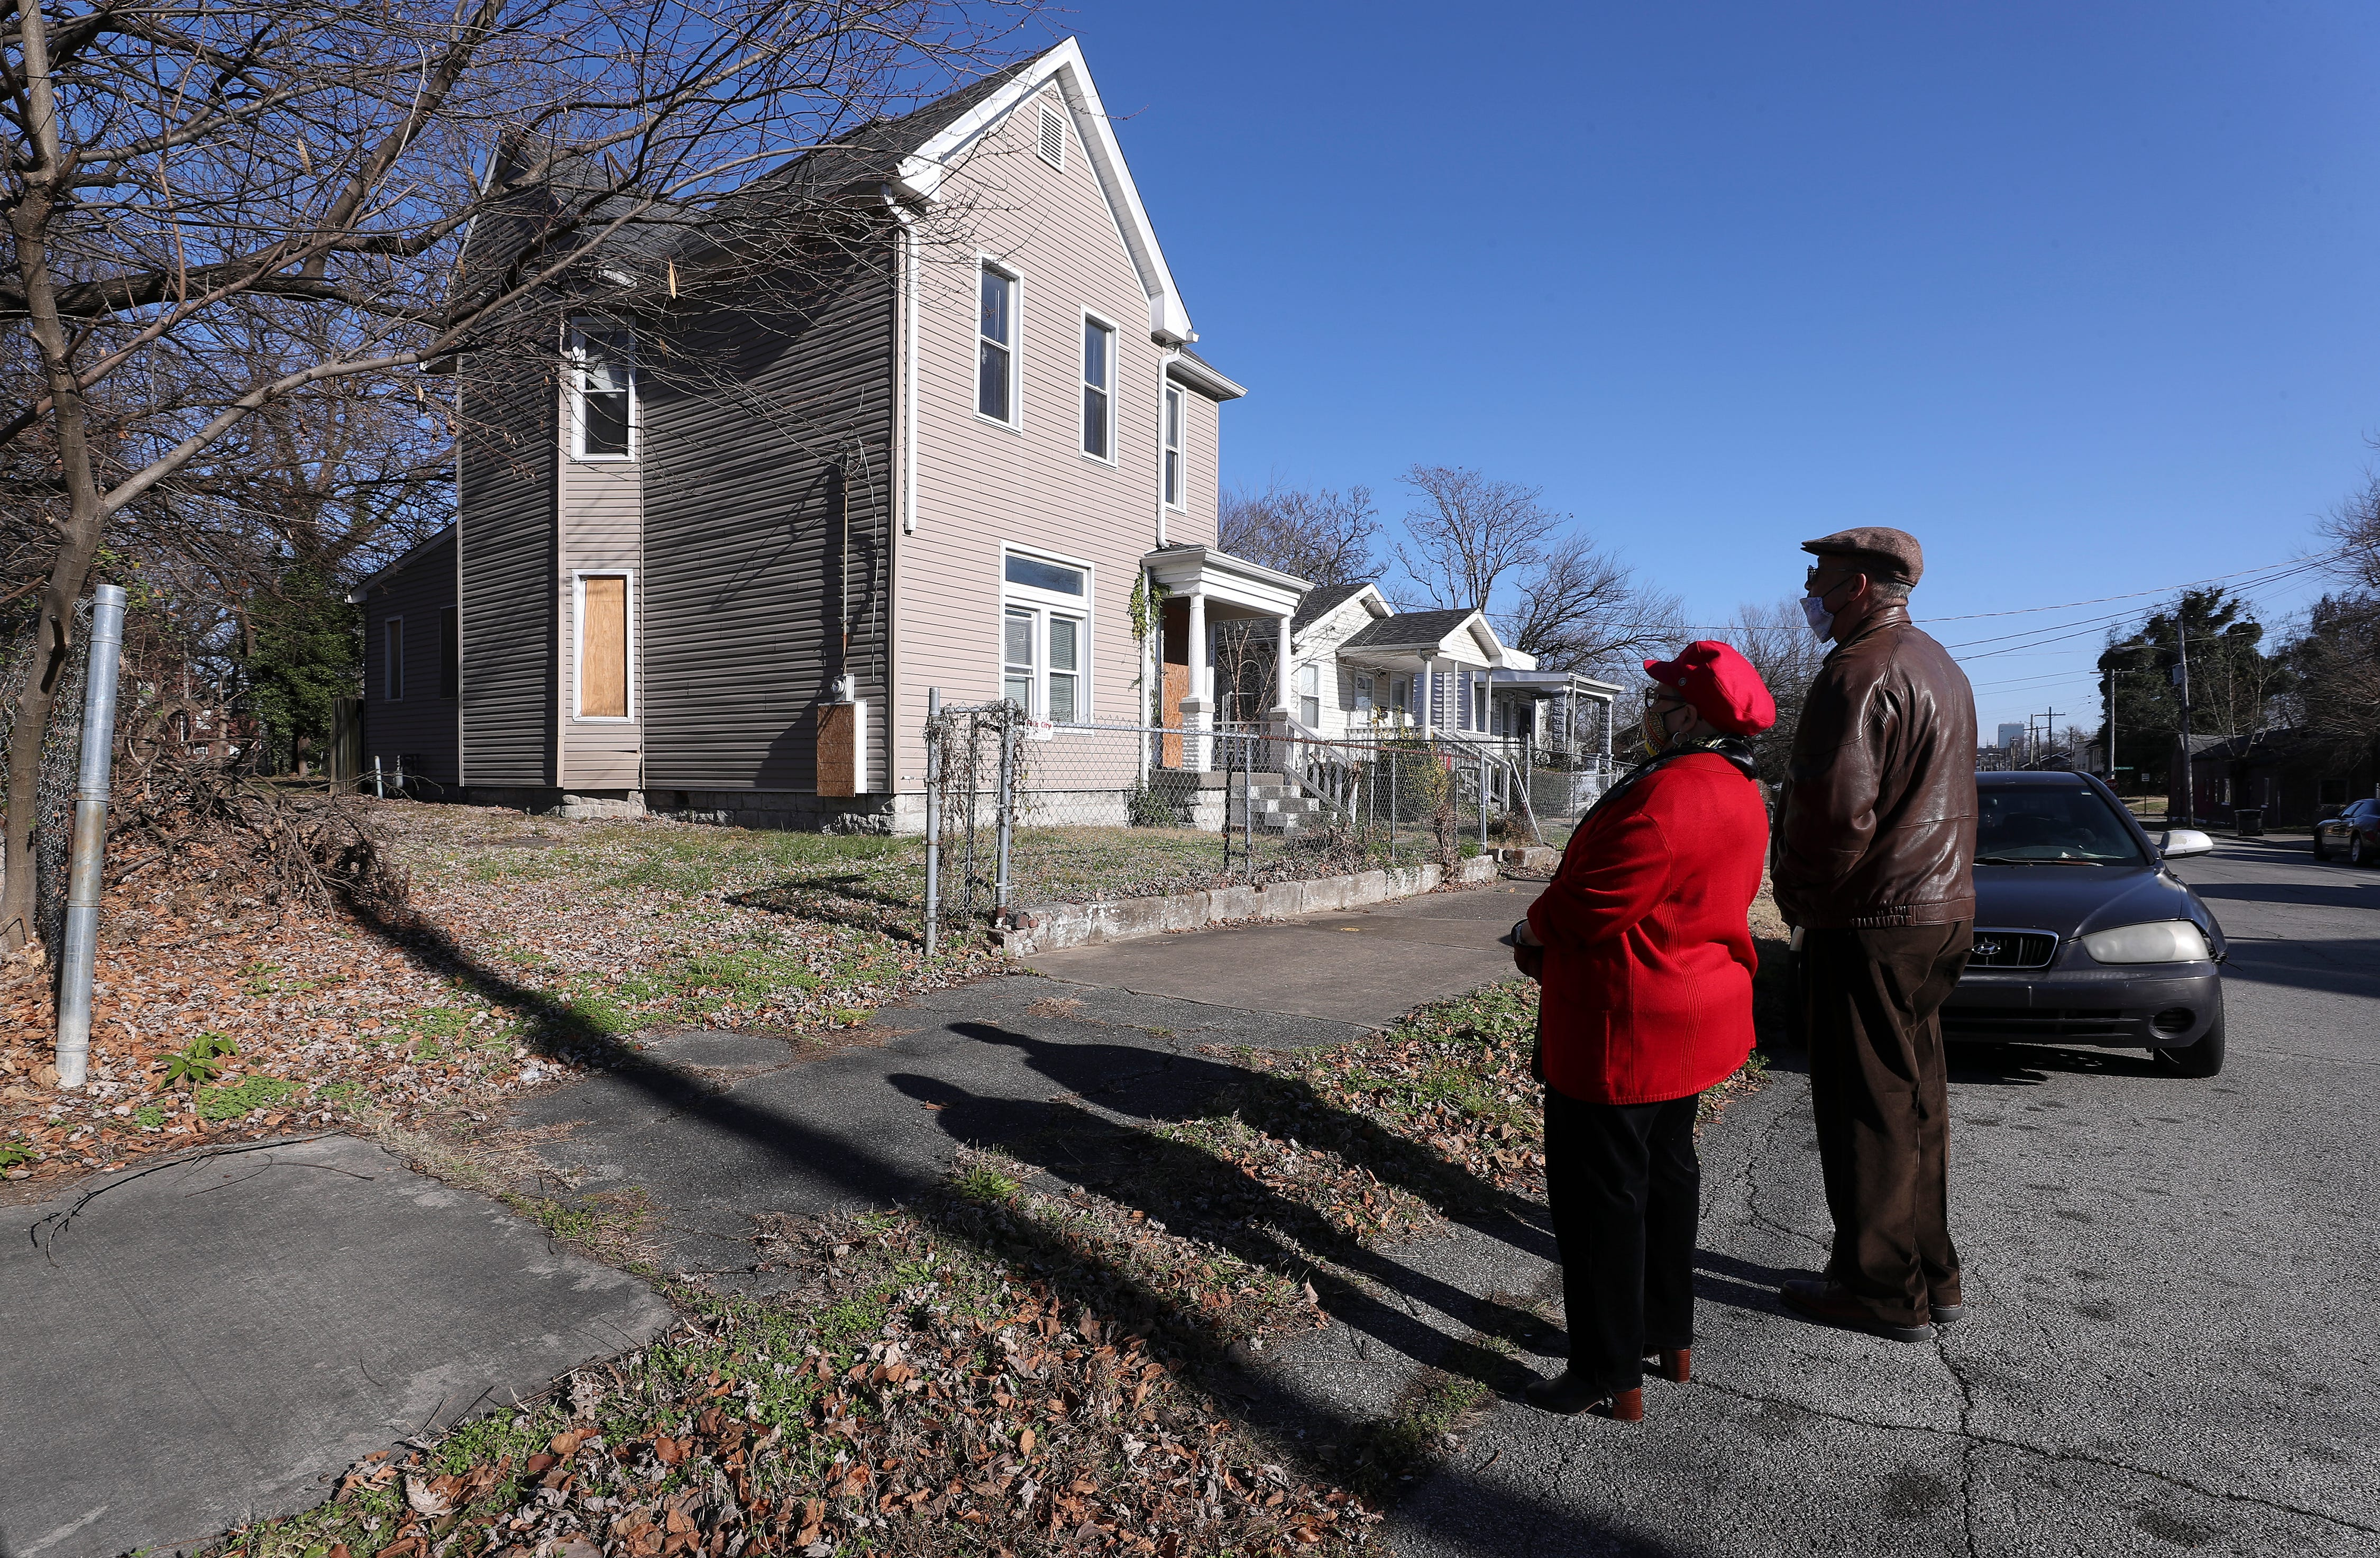 Former educator Deanna Shobe Tinsley, left, and her husband Max Tinsley stop to take a look at her childhood home on Cedar Street in west Louisville. Dec. 22, 2020.